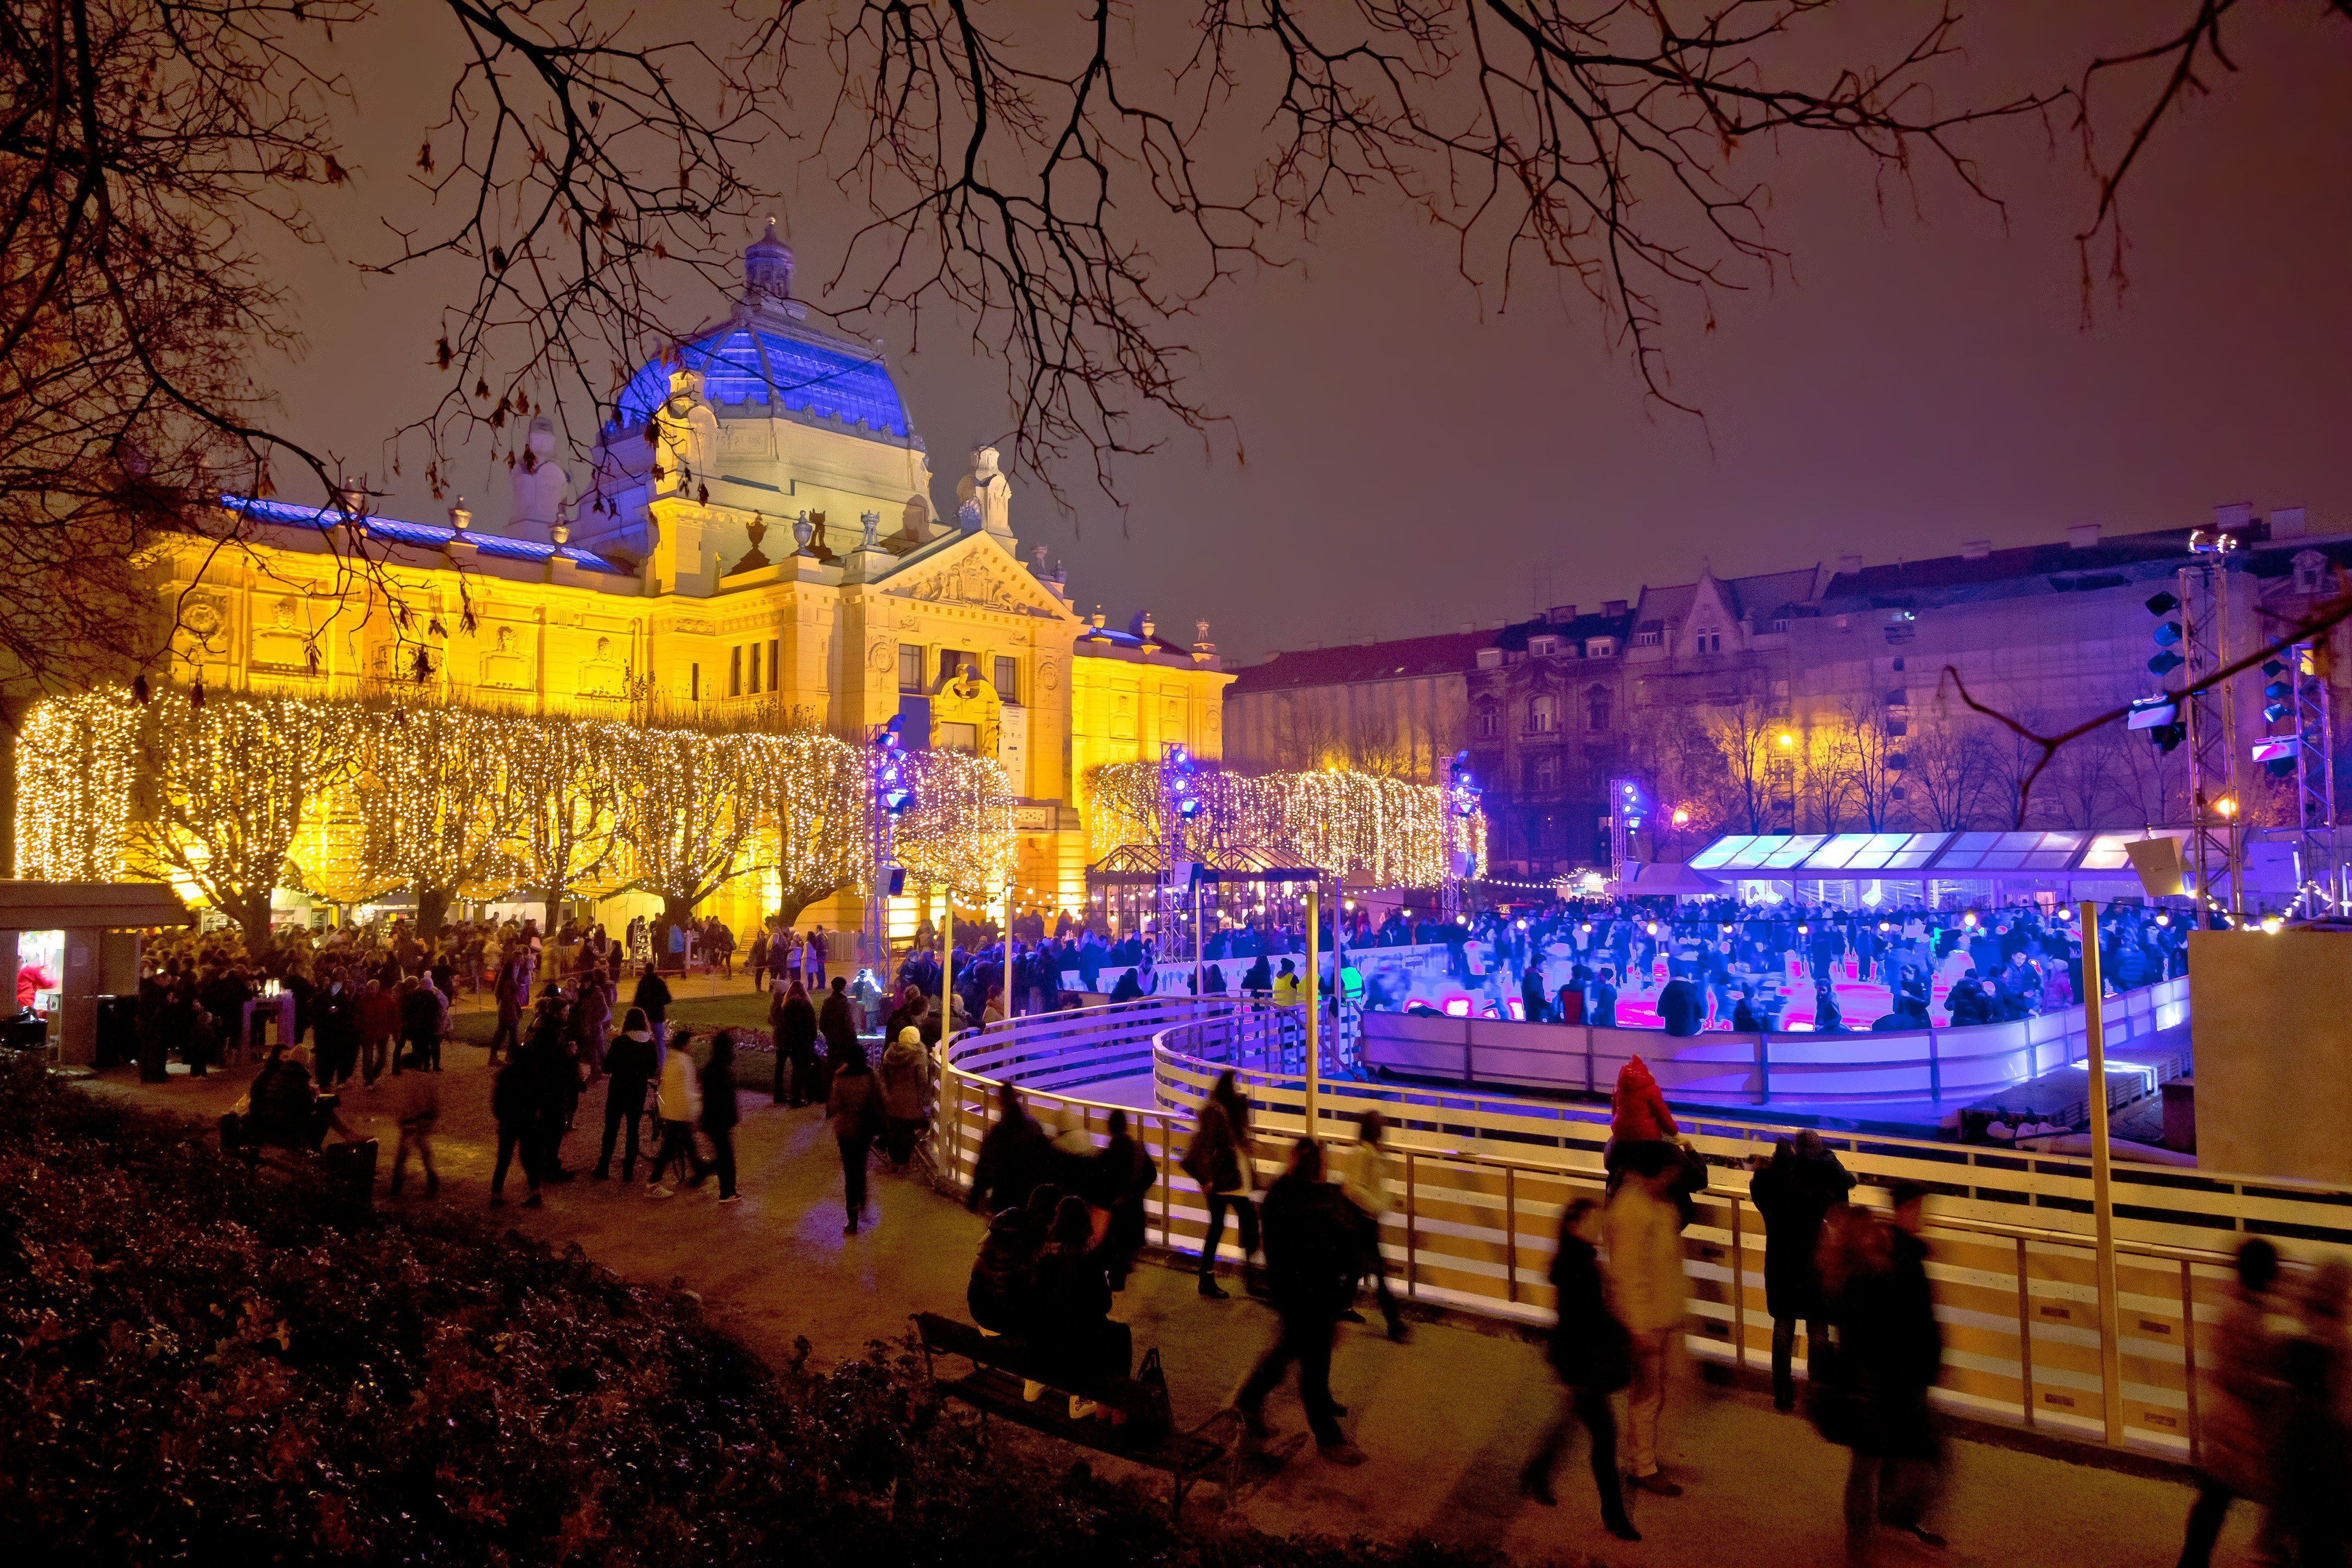 The Best Christmas Market In Europe Is Not Where You D Expect Conde Nast Traveler Christmas Markets Europe Best Christmas Markets Christmas In Europe